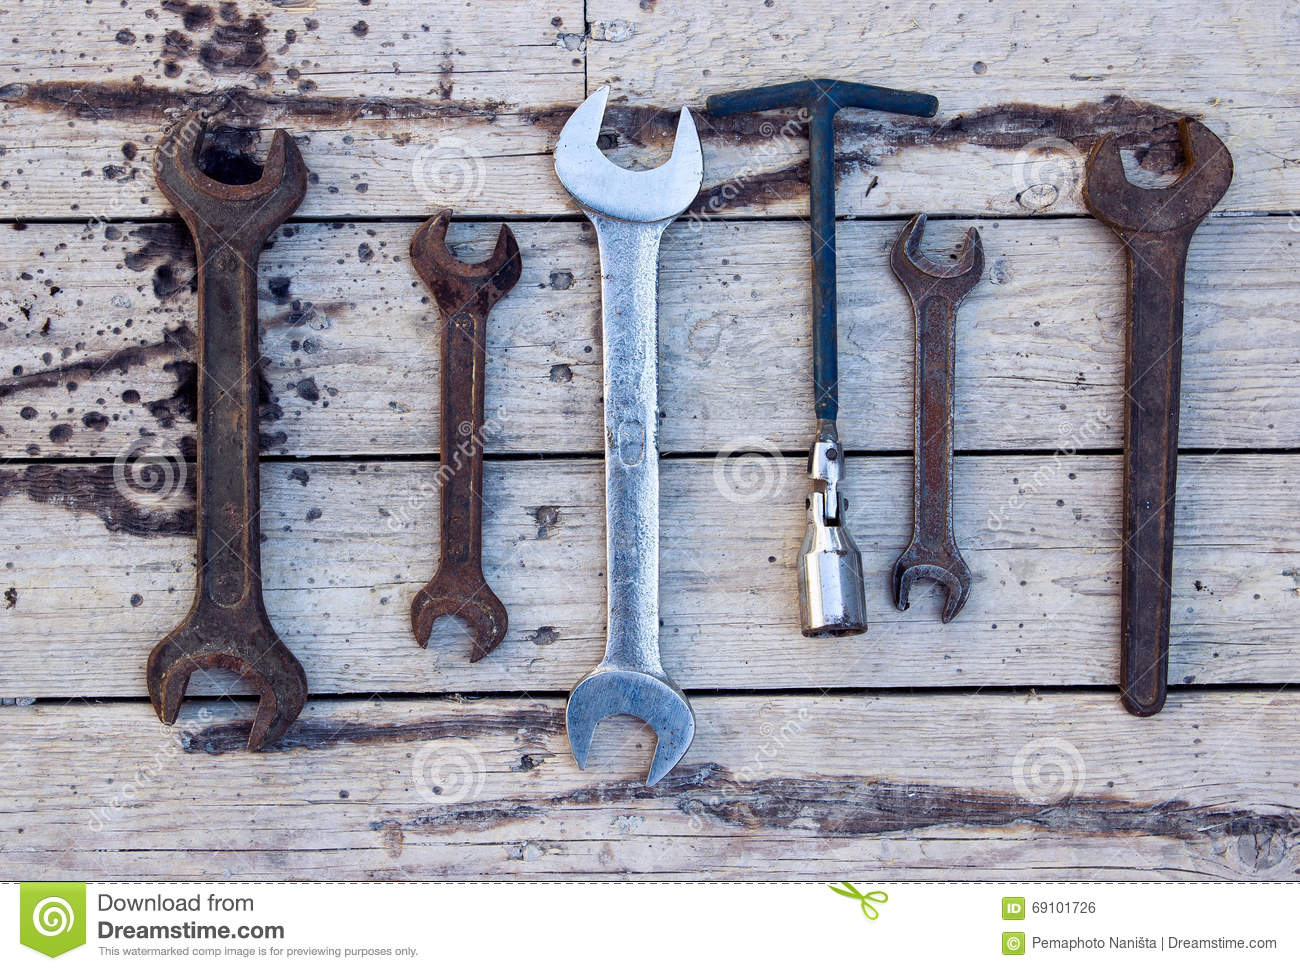 Brilliant Types Of Wrenches Inside Design Ideas